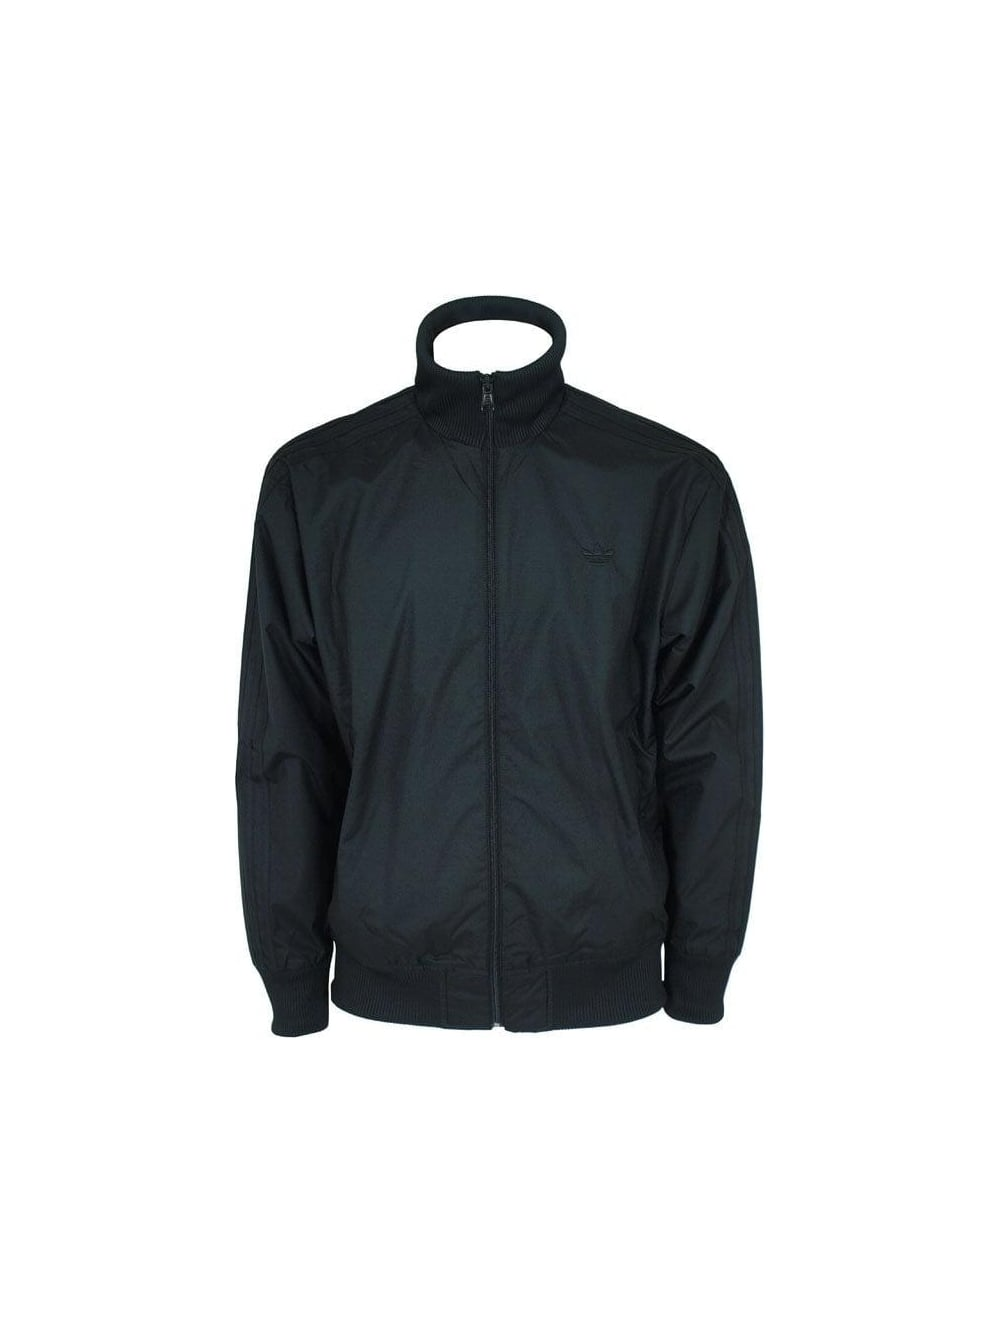 Adidas Originals Adidas Originals Ac Fb Track Jacket Black